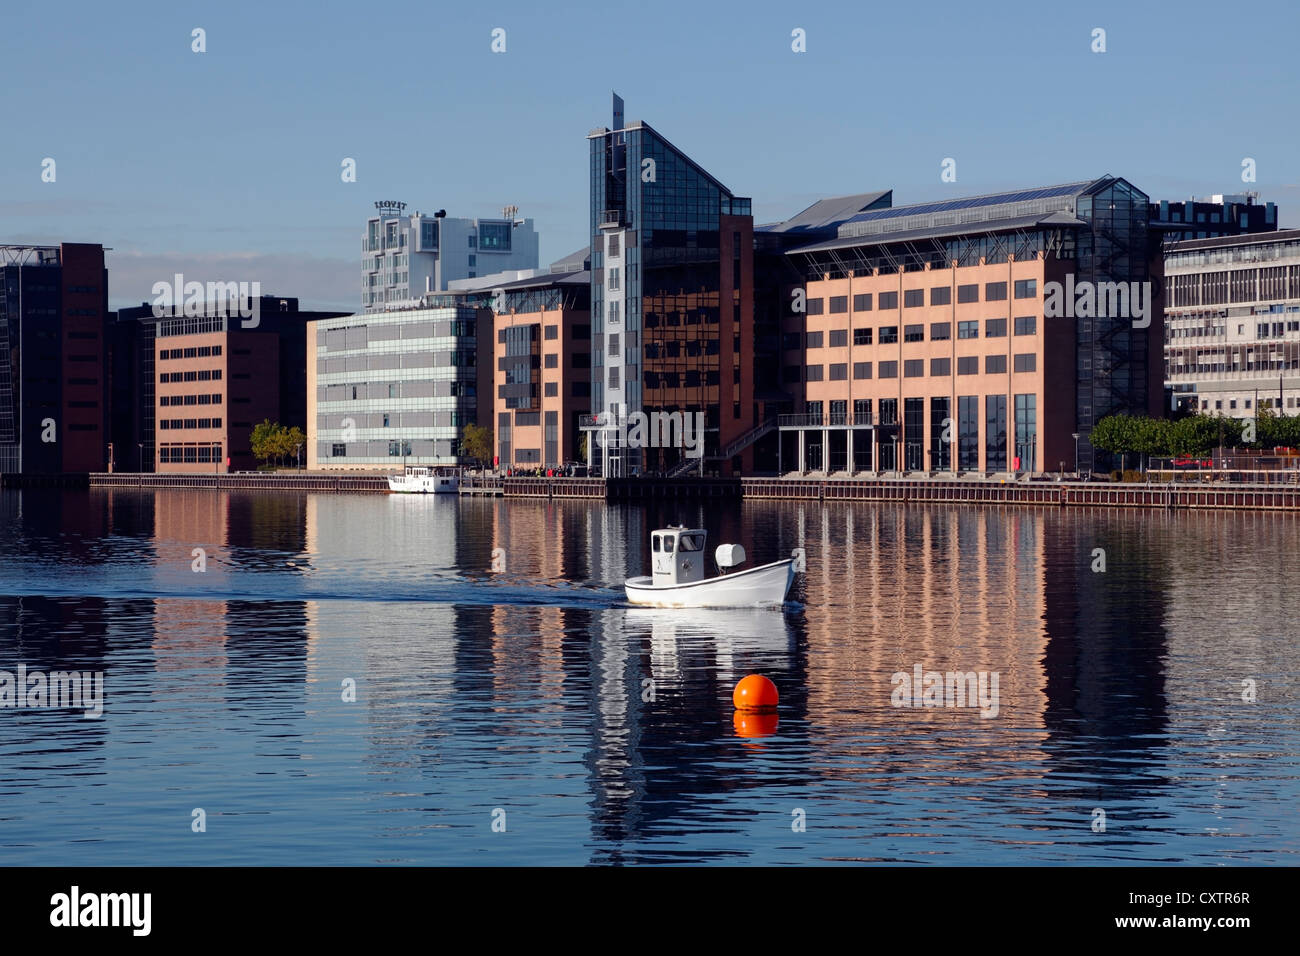 Fishing vessel in Sydhavnen (South Harbour) in the port of Copenhagen. Reflections of buildings in the water. City - Stock Image